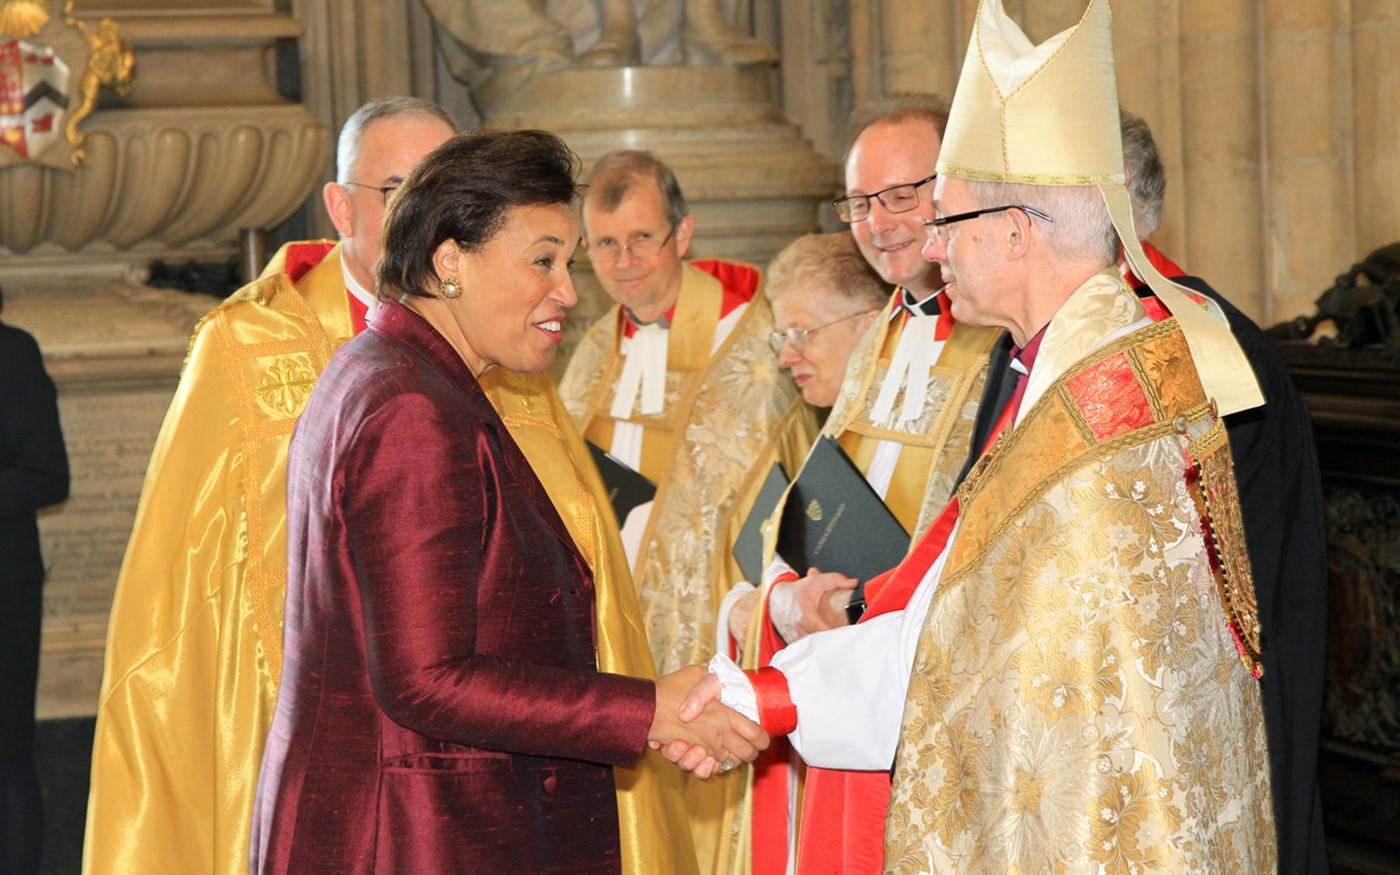 The Right Honourable The Baroness Scotland of Asthal QC, Secretary-General of the Commonwealth, arrives and is greeted by The Most Reverend and Right Honourable Justin Welby, Archbishop of Canterbury, Primate of All England and Metropolitan